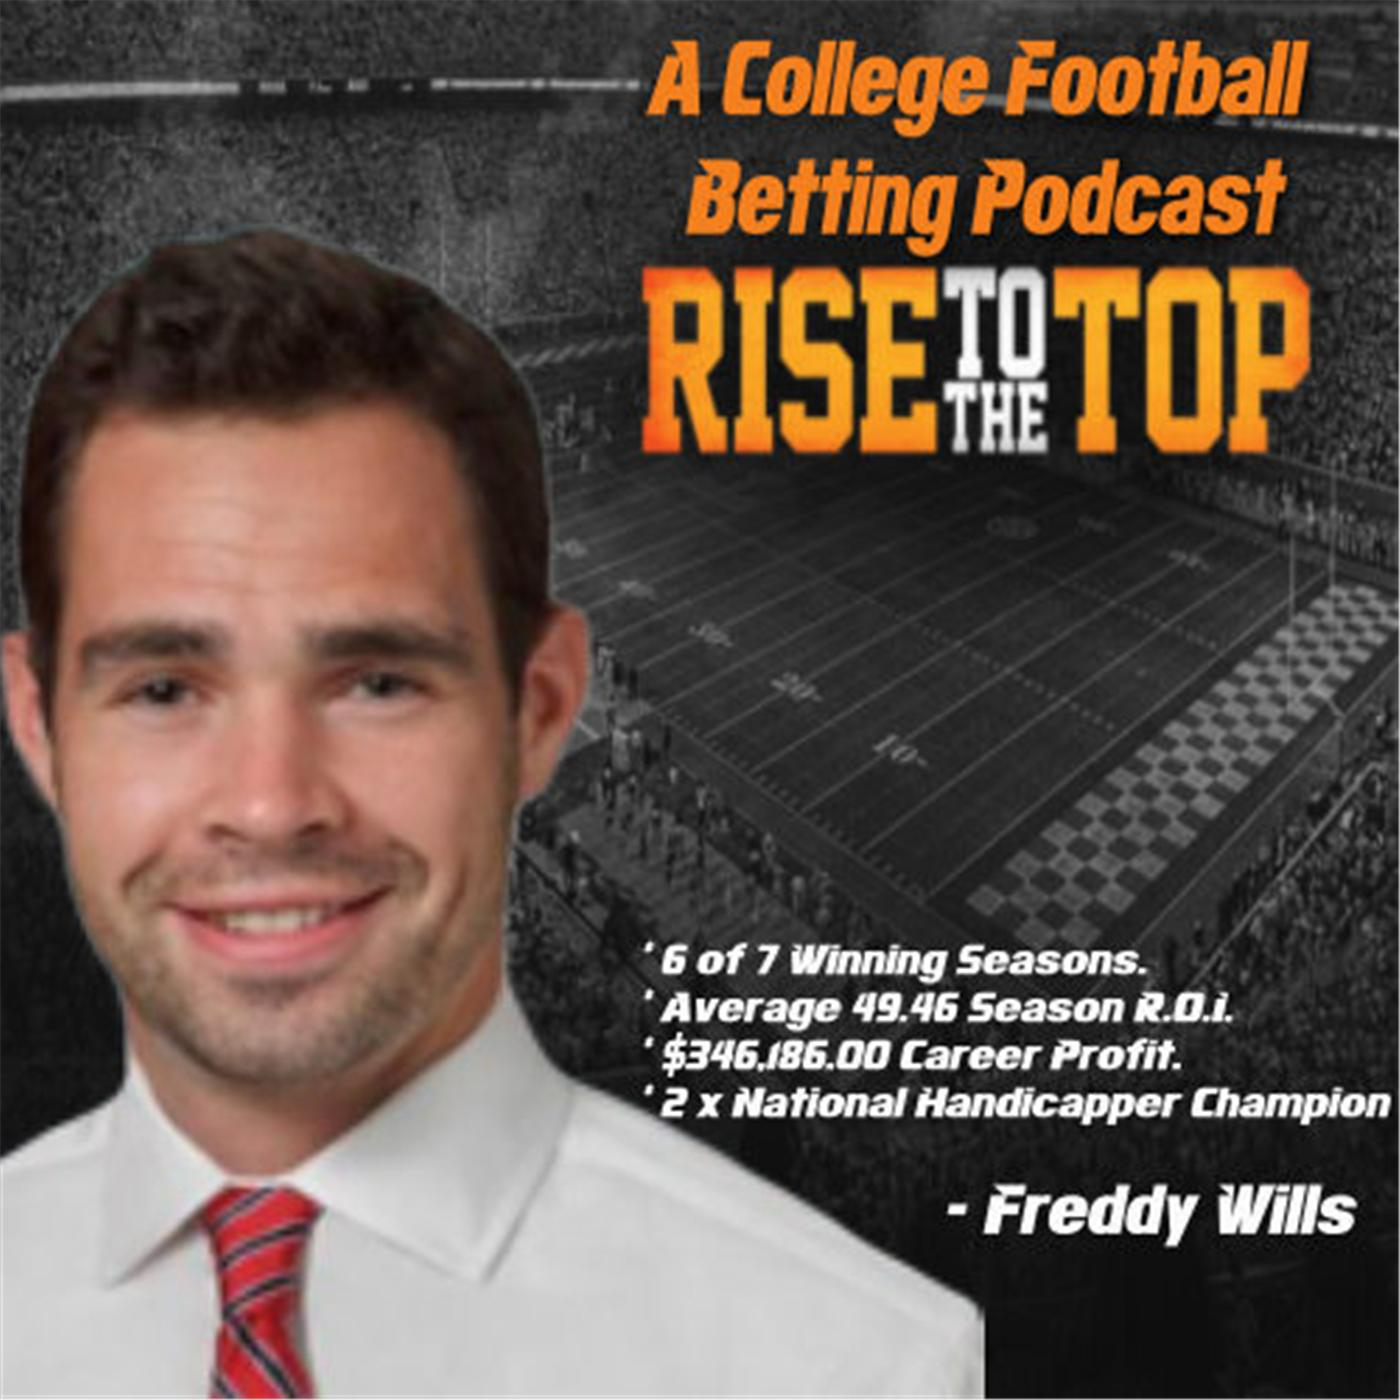 College Football Betting Advice - RISE TO THE TOP